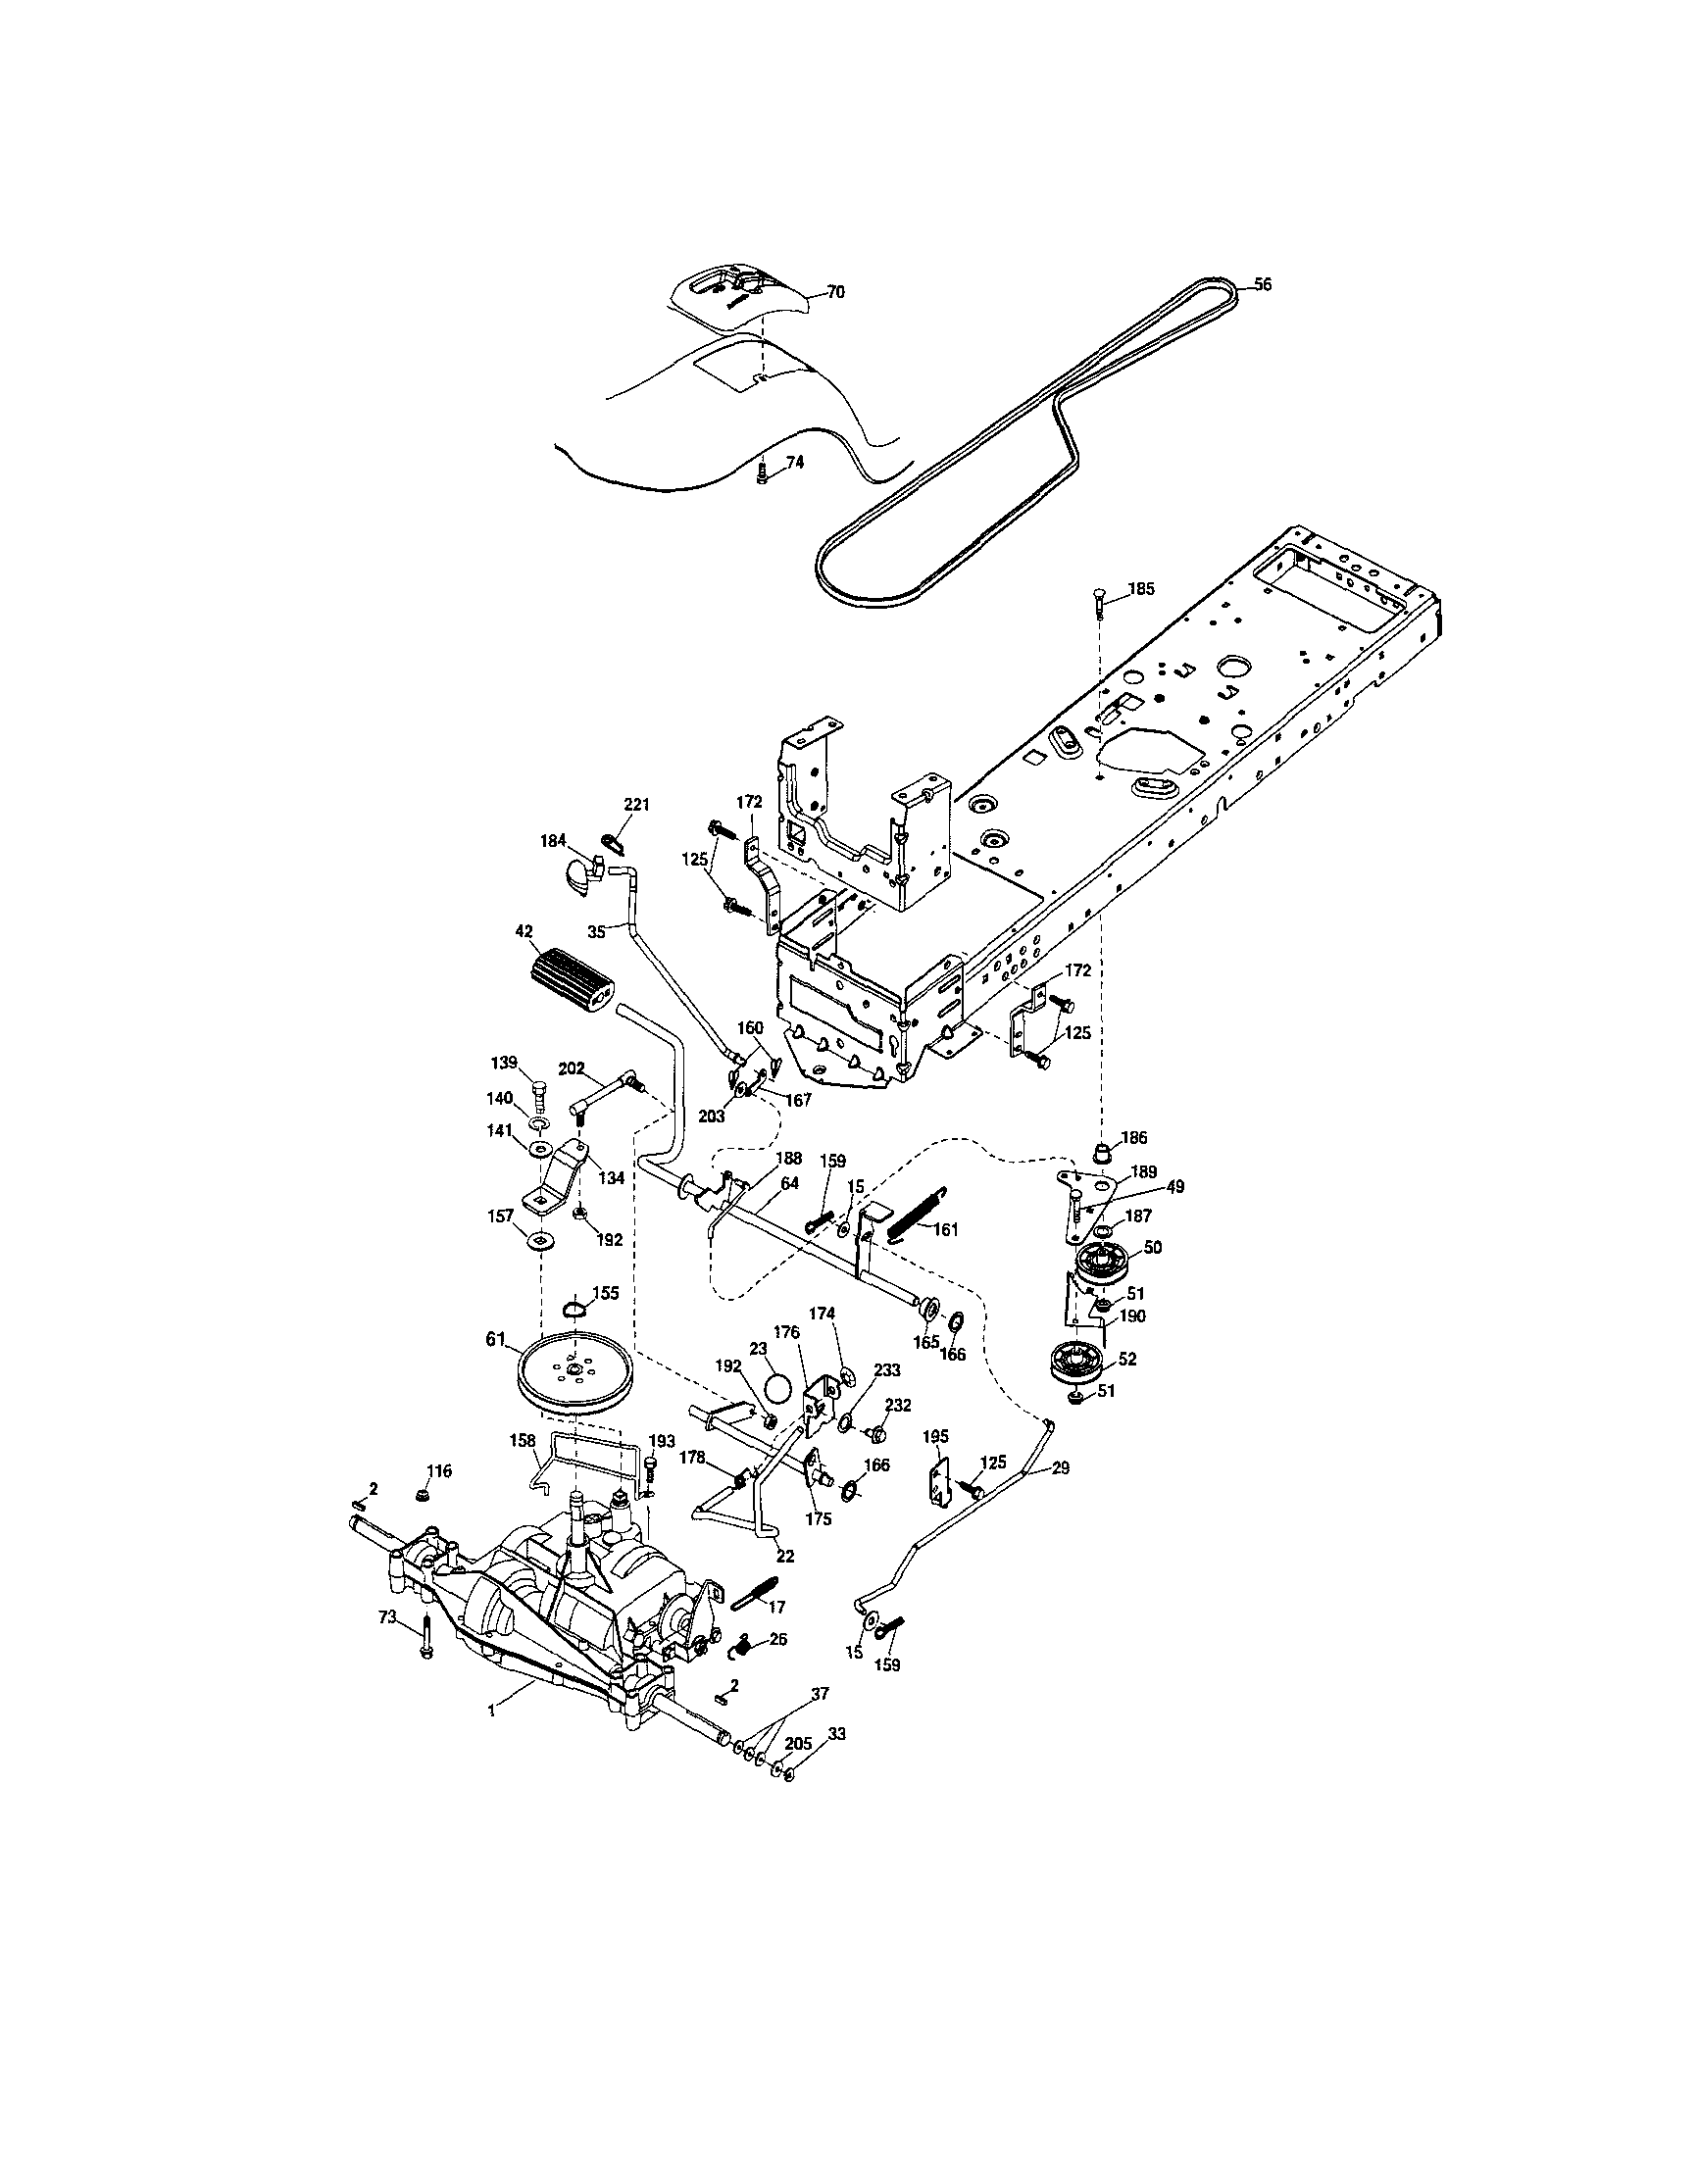 hight resolution of lt 1500 craftsman riding lawn mower belt diagram image